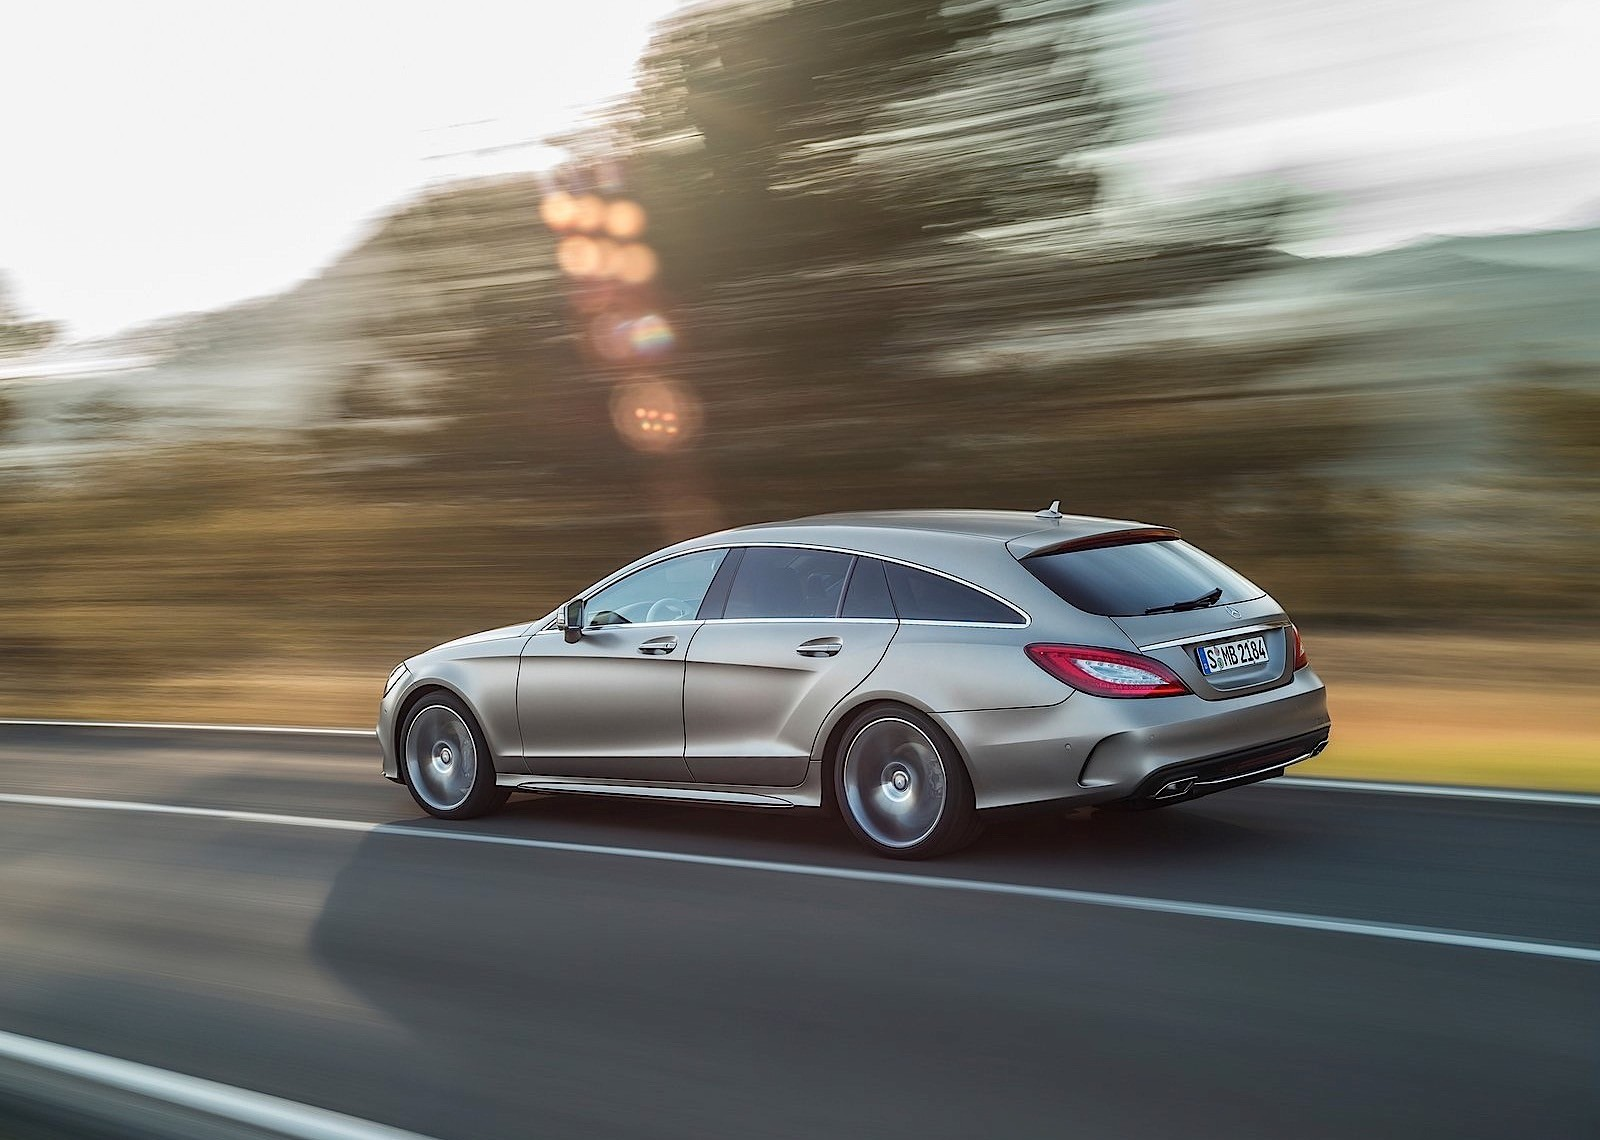 MERCEDES-BENZ-CLS-Shooting-Brake-5379_28.jpg